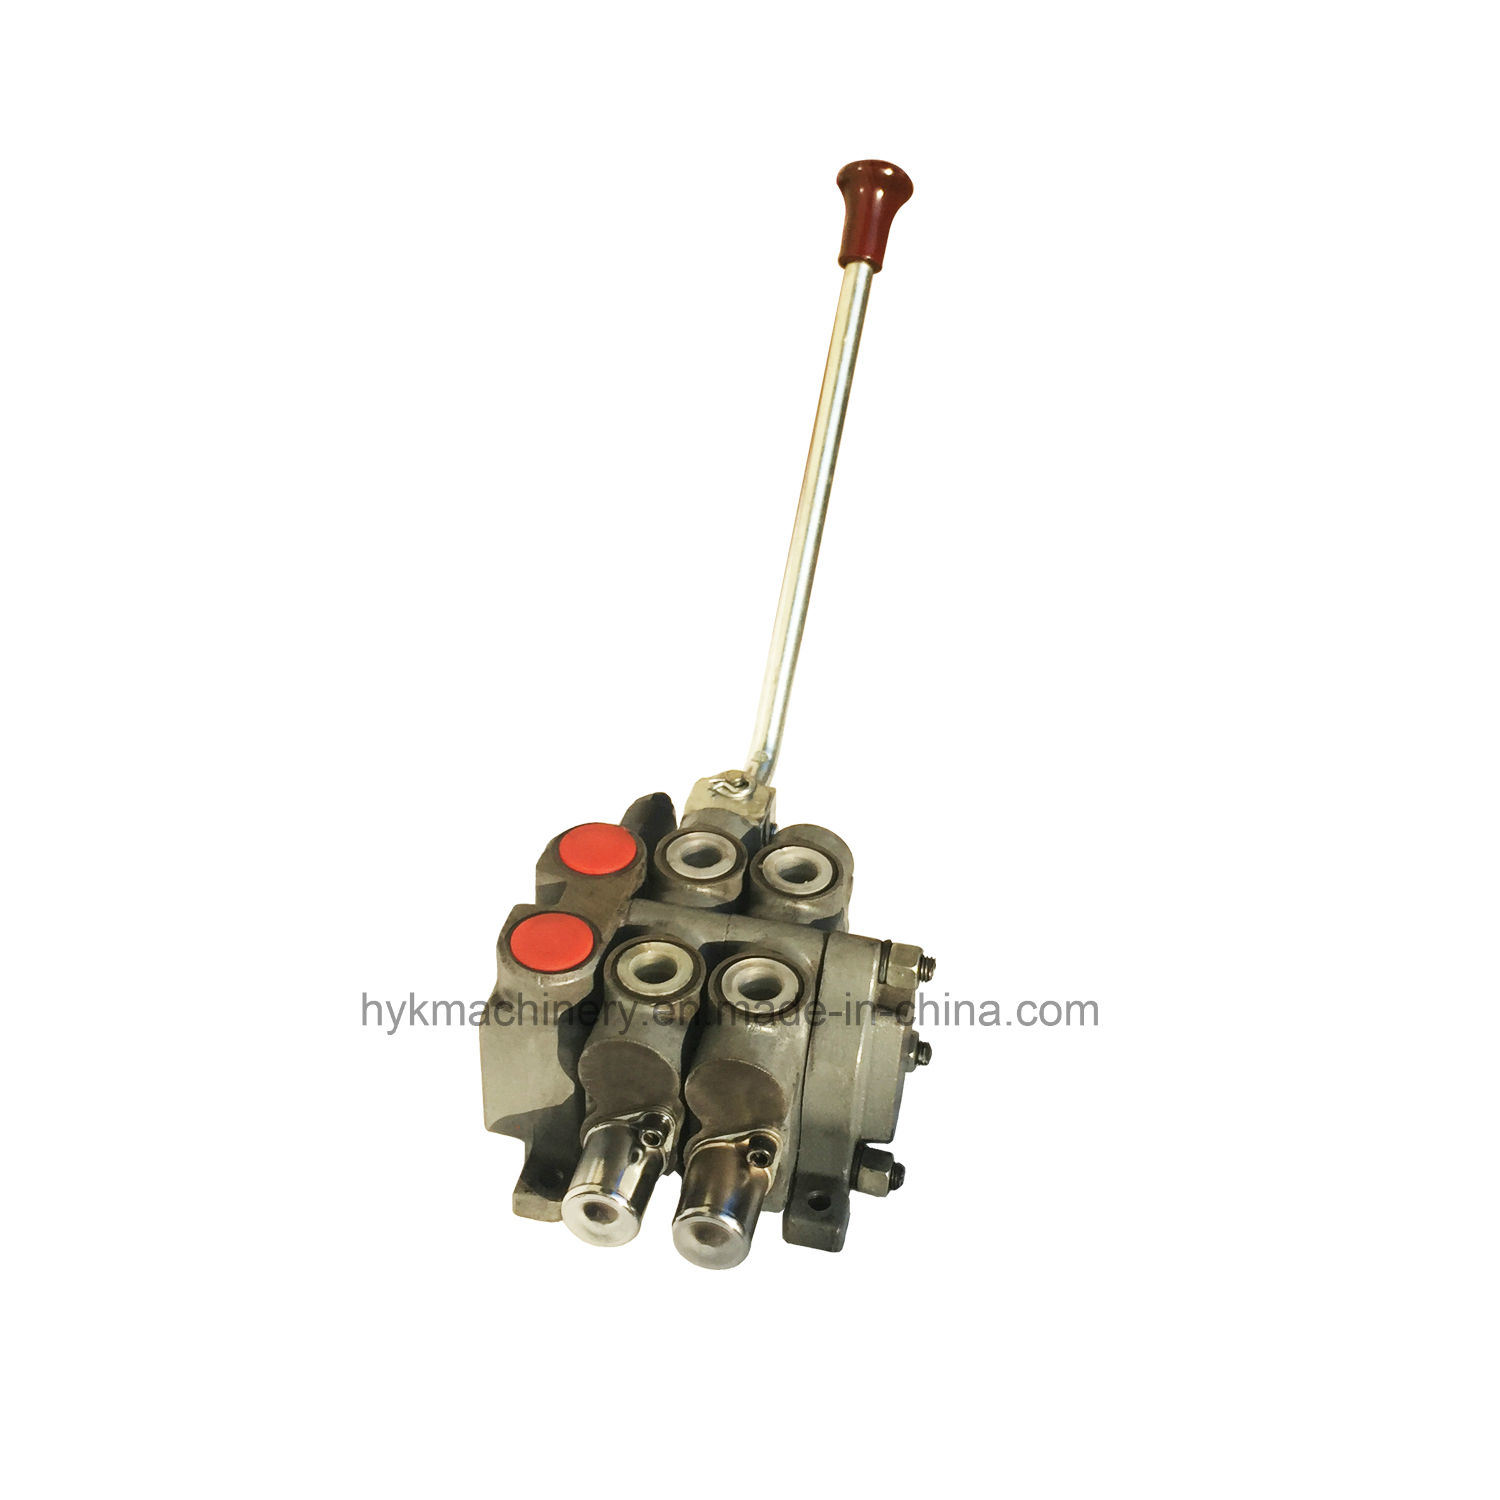 ZCDB 2 Spool Hydraulic Multiple Directional Pump Control Spool Valve